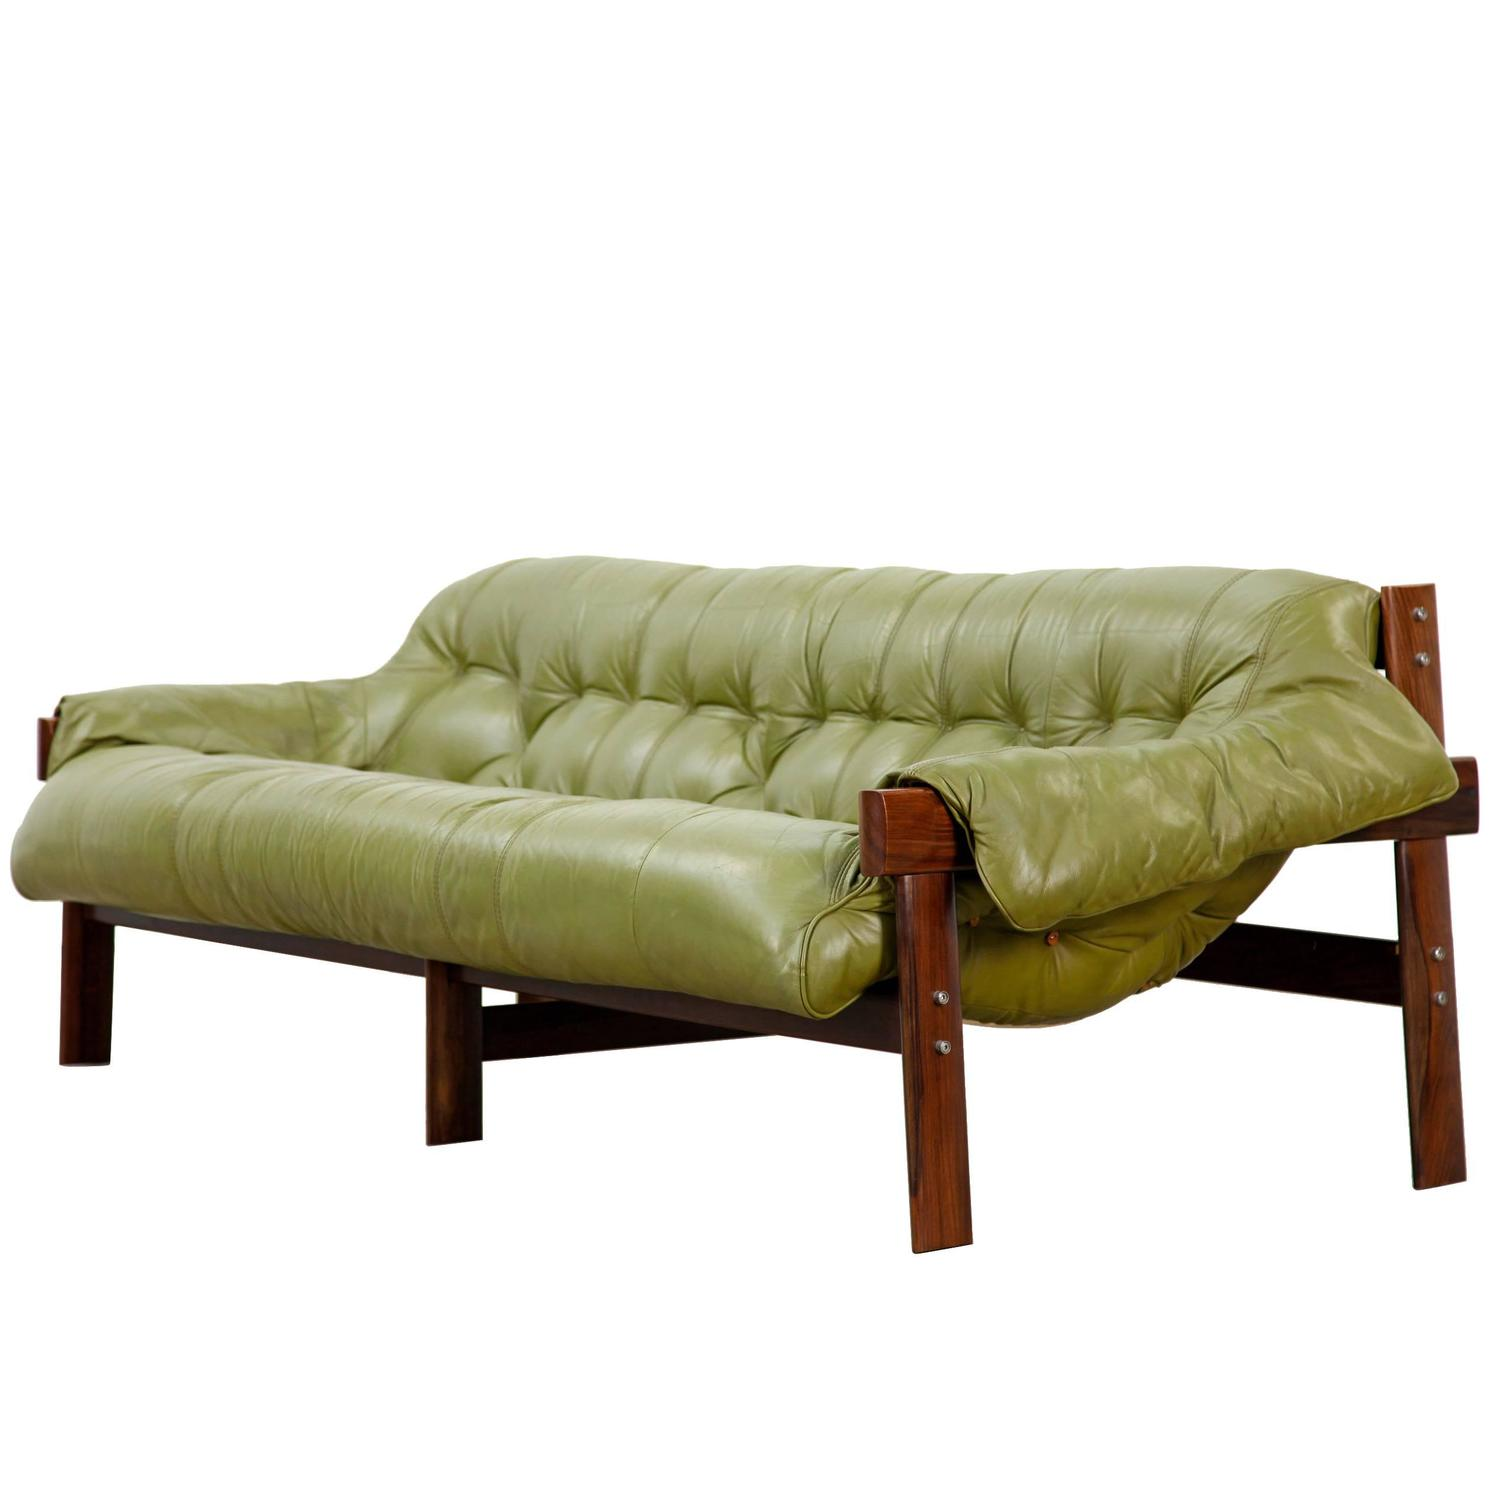 percival lafer sofa free pick up mid century modern brazilian